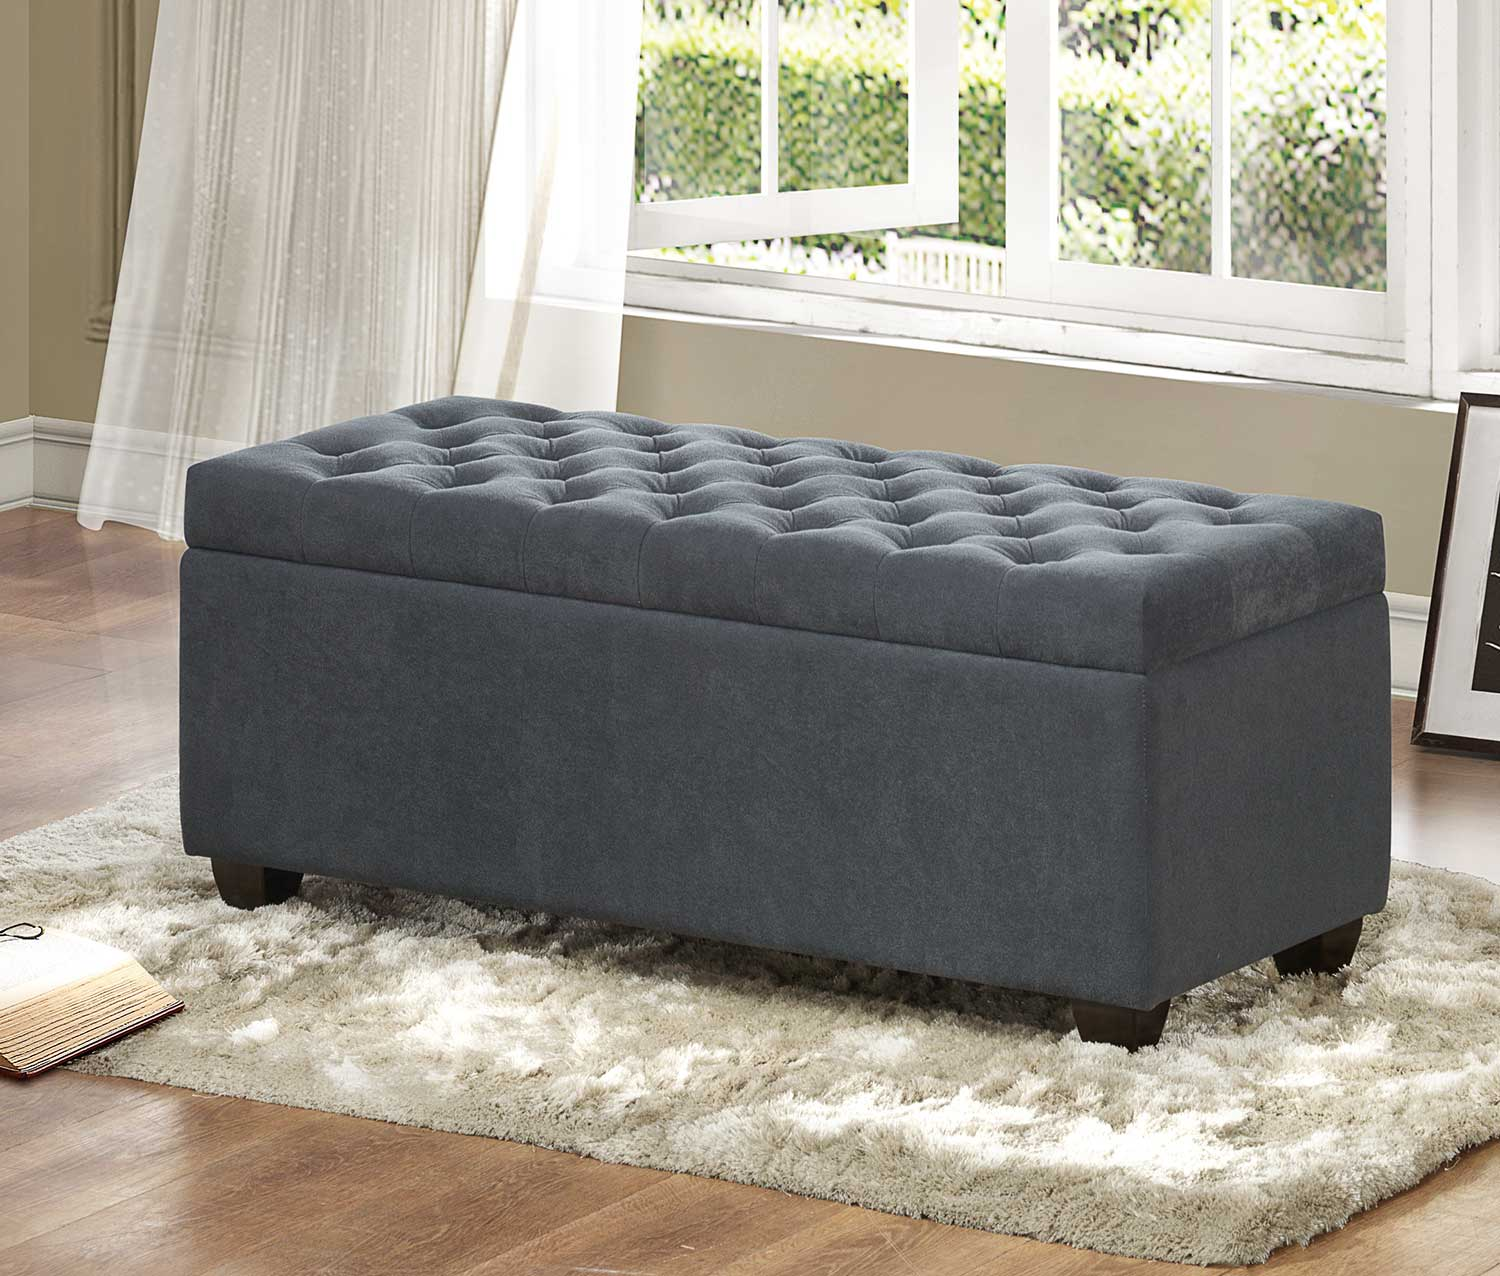 Homelegance Colusa Lift Top Storage Bench Neutral Grey Fabric 4741fa